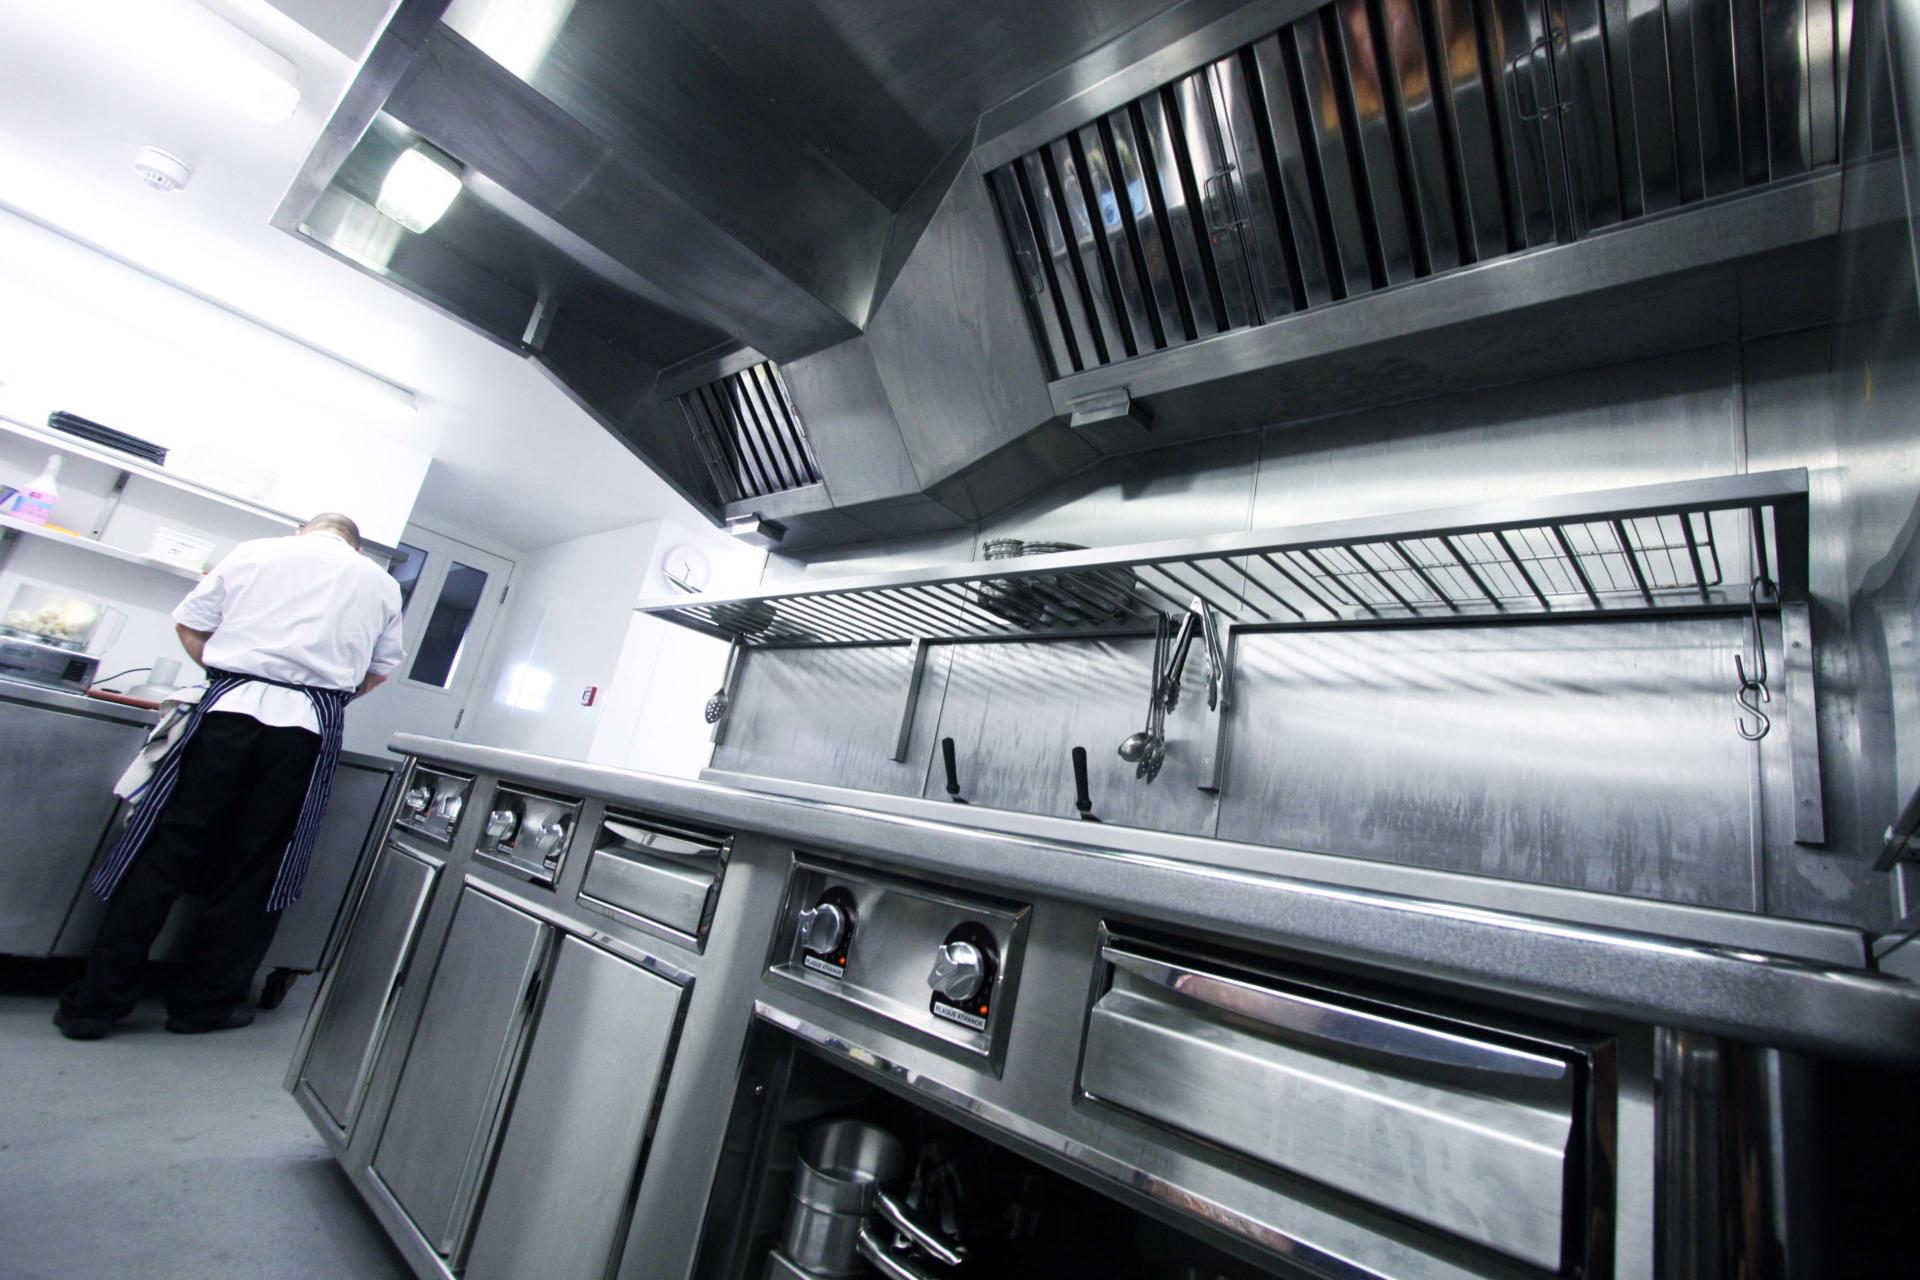 curlew_robertsbridge_kitchen_spacecatering_4